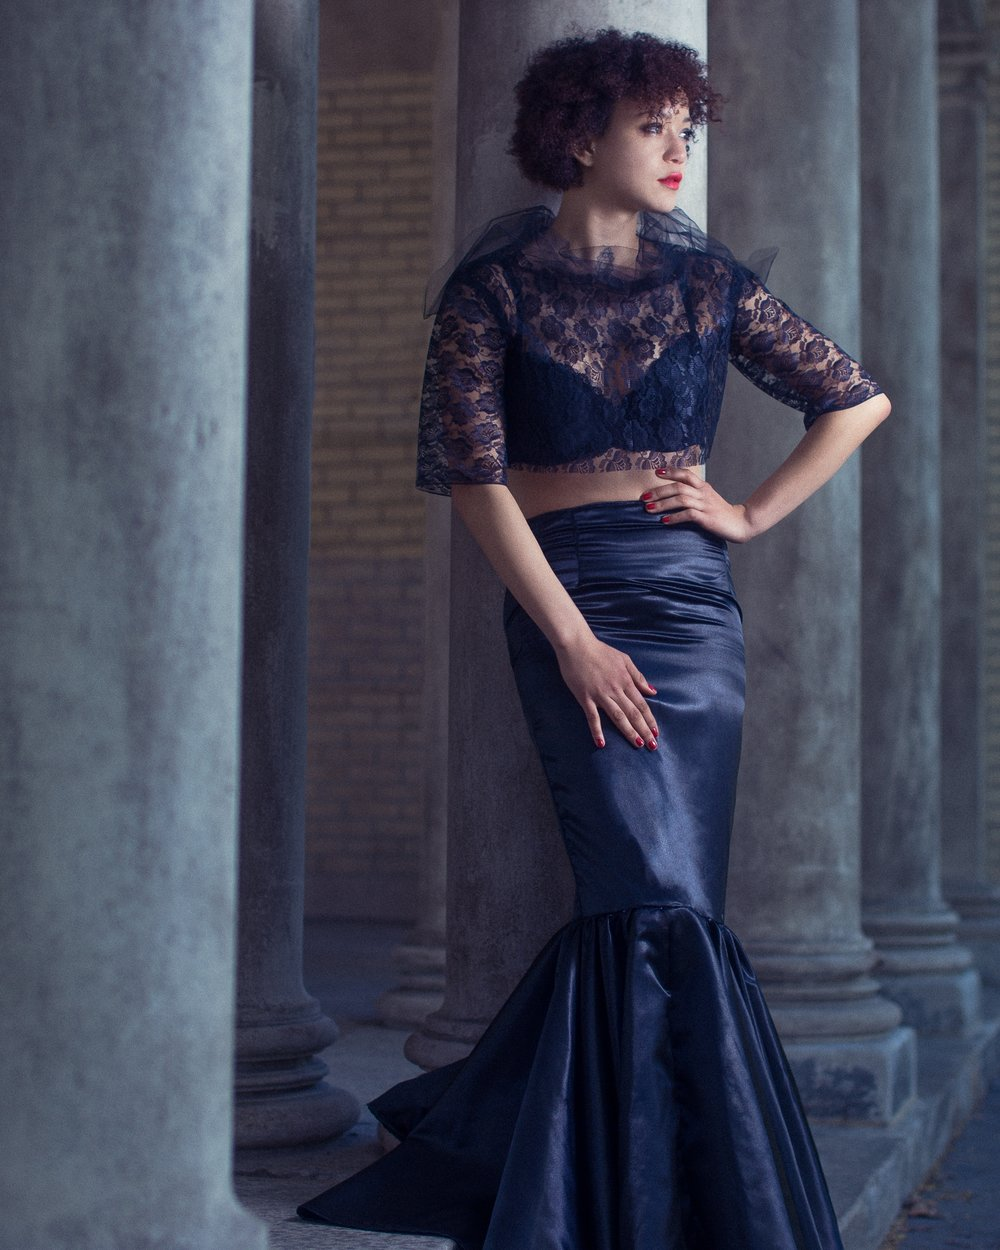 Top and Skirt: The Amme Collection  Model: May Daniels  Photography: Aaron.Hx